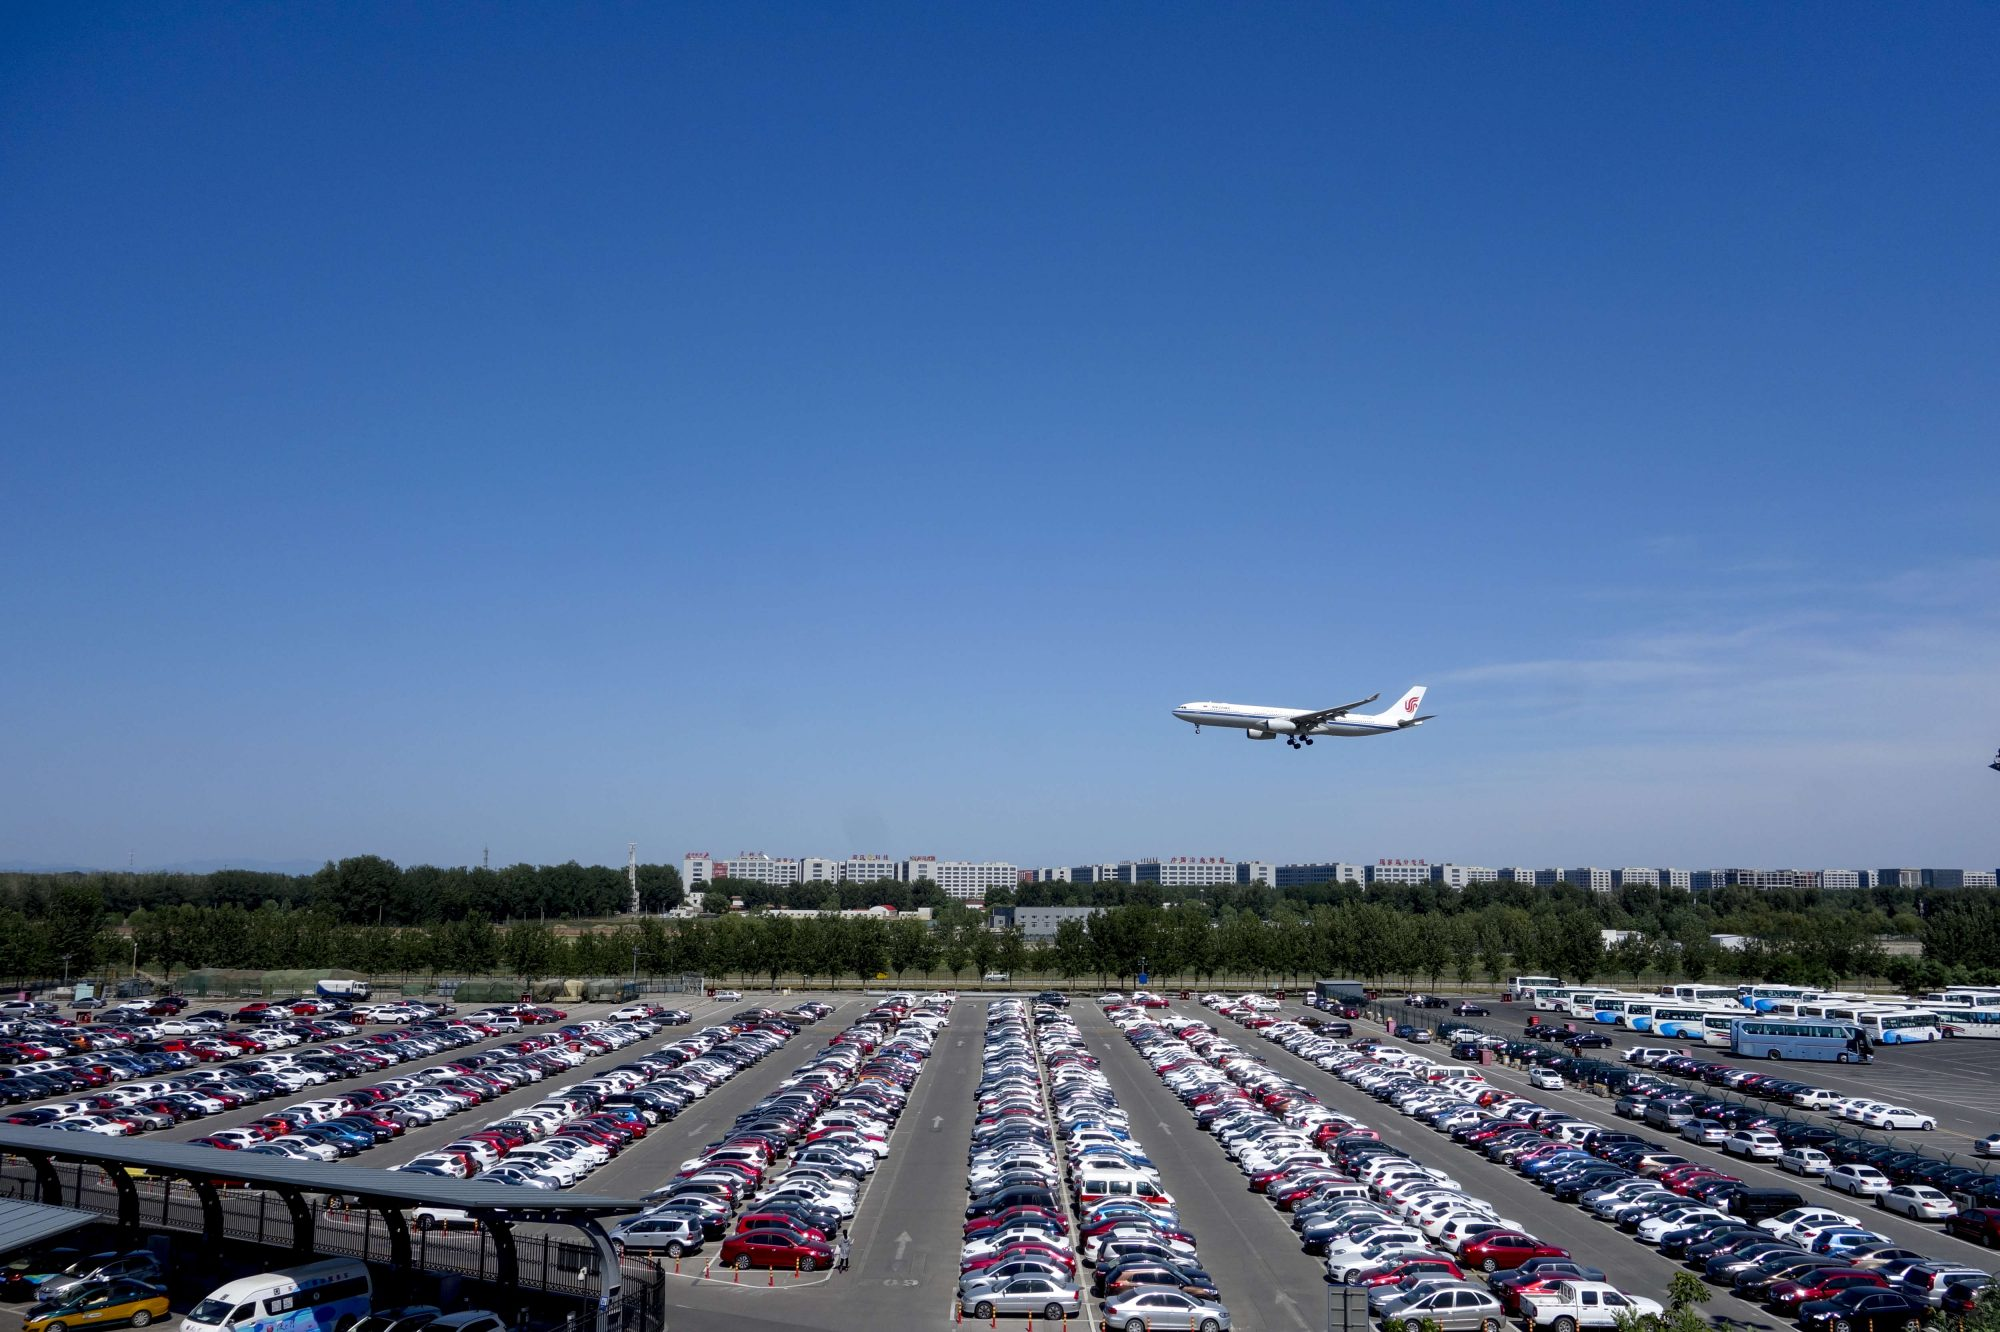 A plane of Air China flies over a parking lot as it cones in